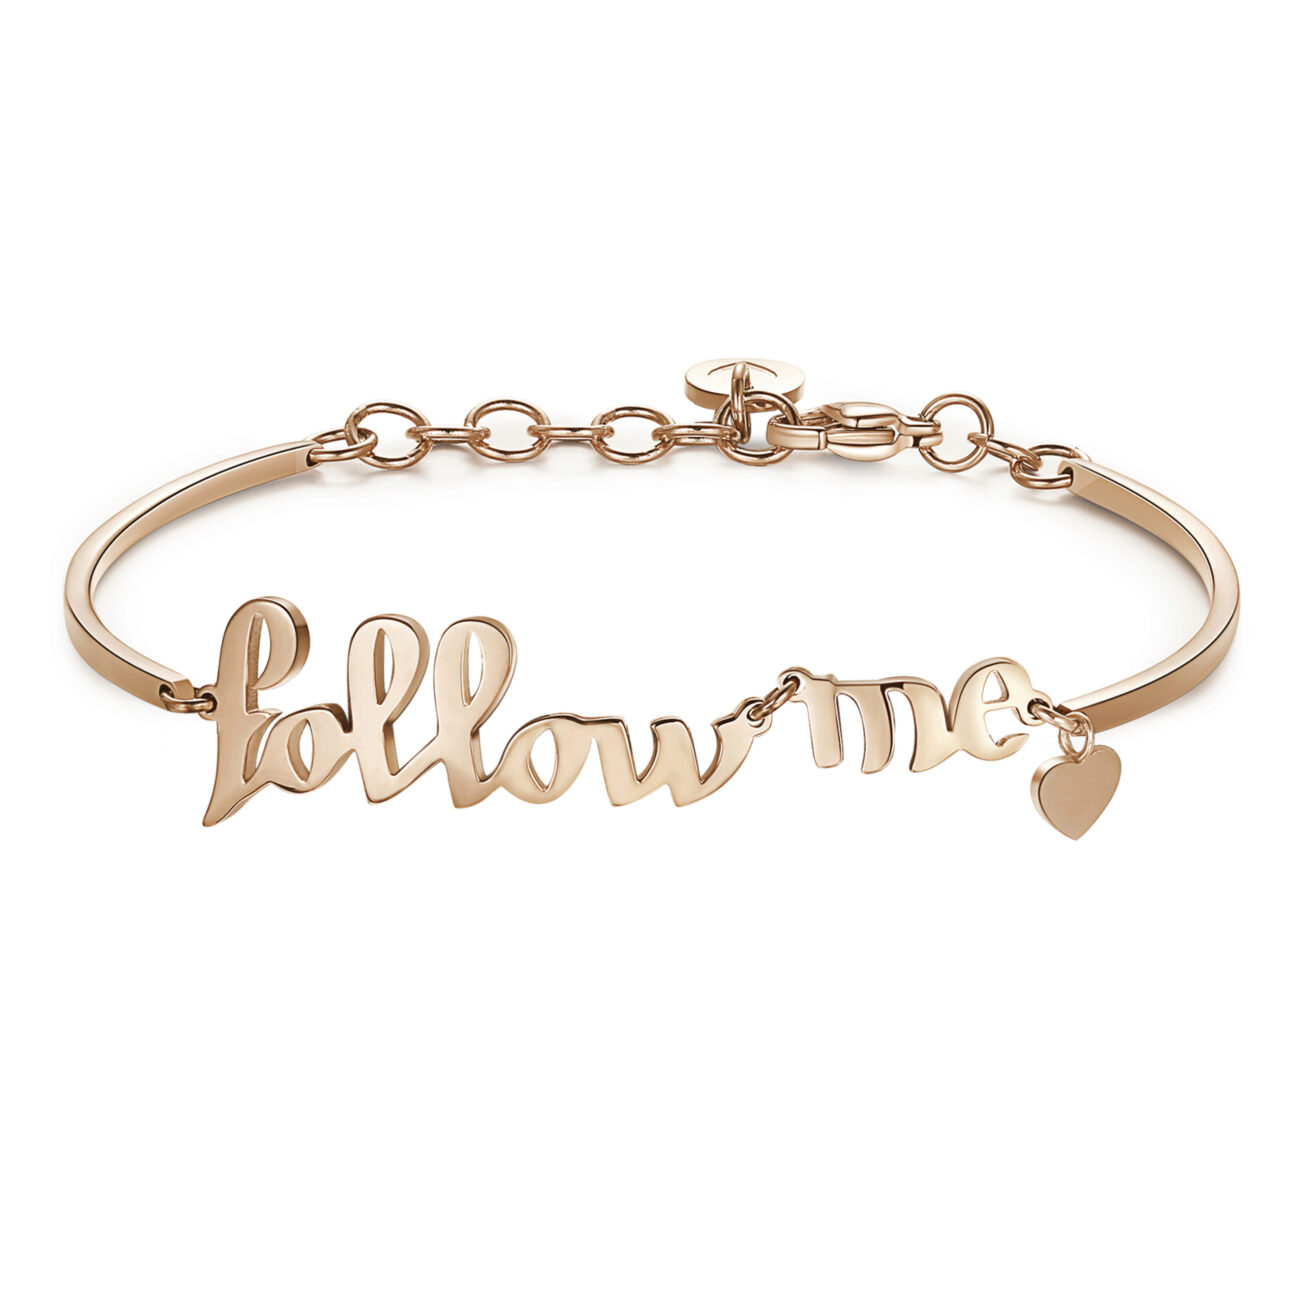 FOLLOW ME:FASHION, SHARING, ORIGINALITYFor you that you are always finding the perfect accessory and share it on socials, your secret is the originality, Your followers love you!316L stainless steel bracelet and rose gold pvd with Follow me lettering and heart.